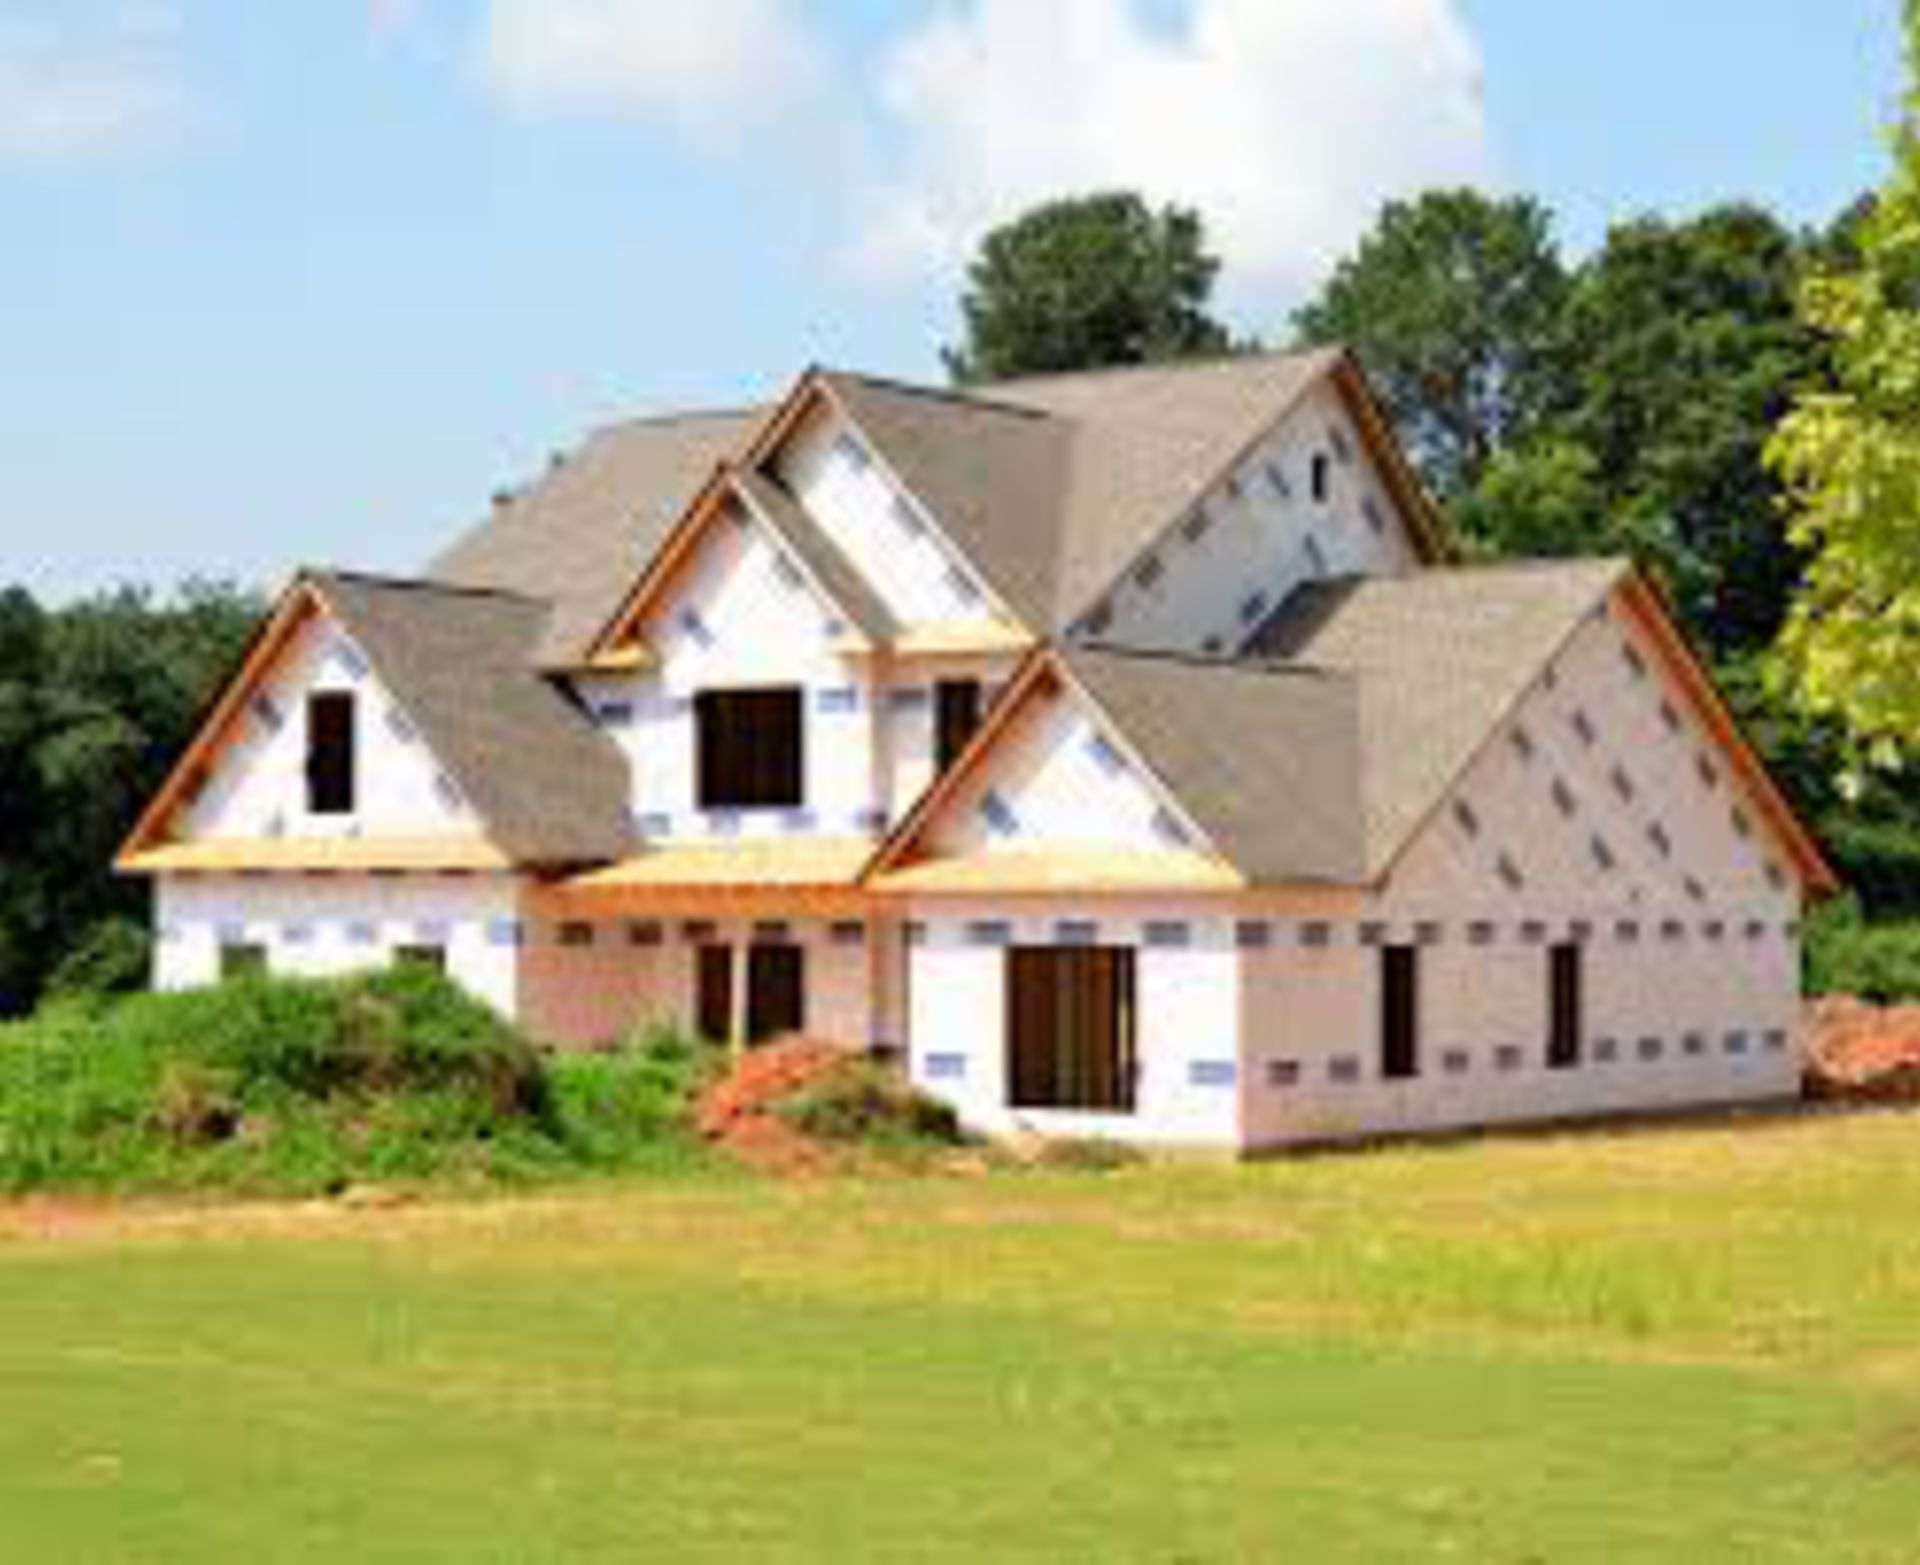 Do I Really Need to Use an Agent for a New Construction Home?